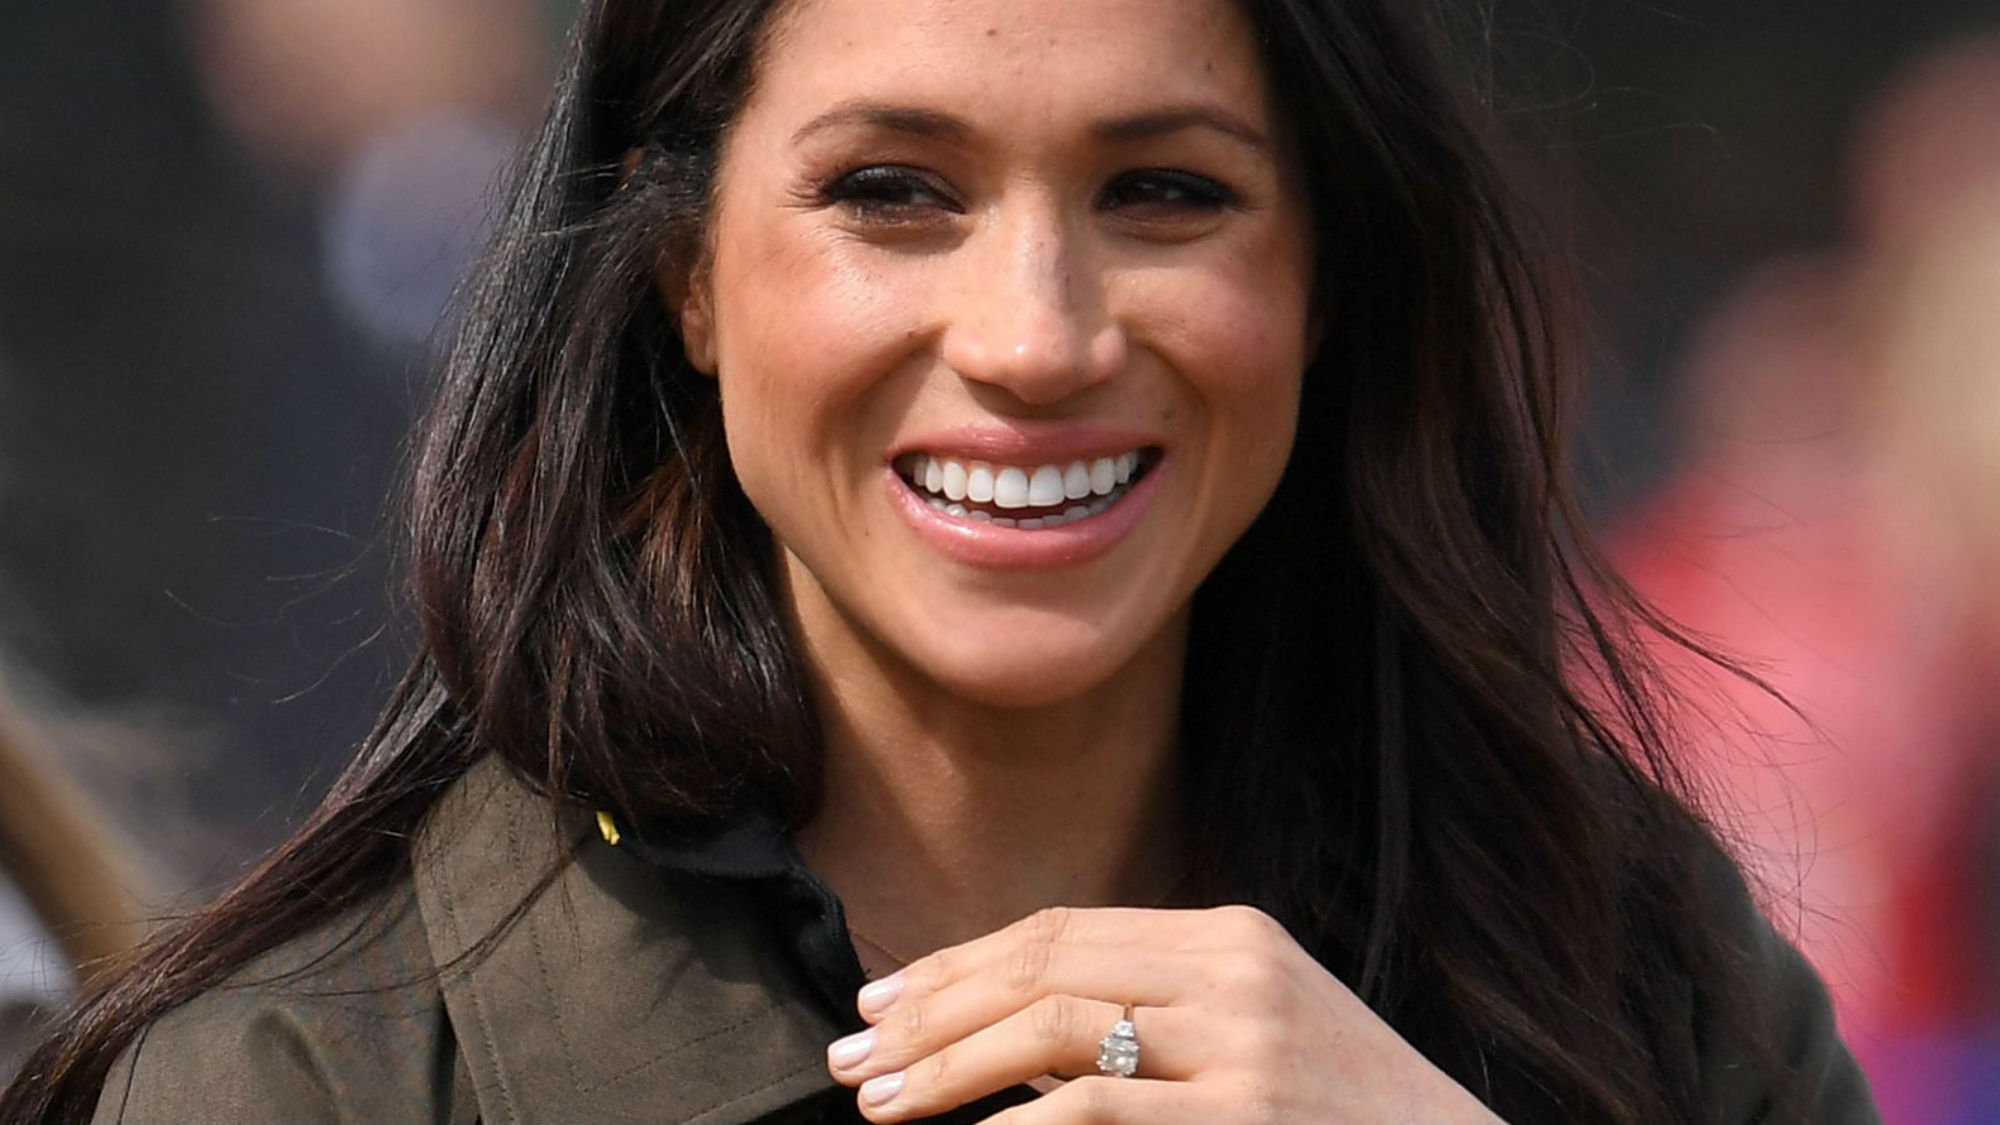 Meghan Markle wouldn't be the first royal to have a woman walk her down the aisle